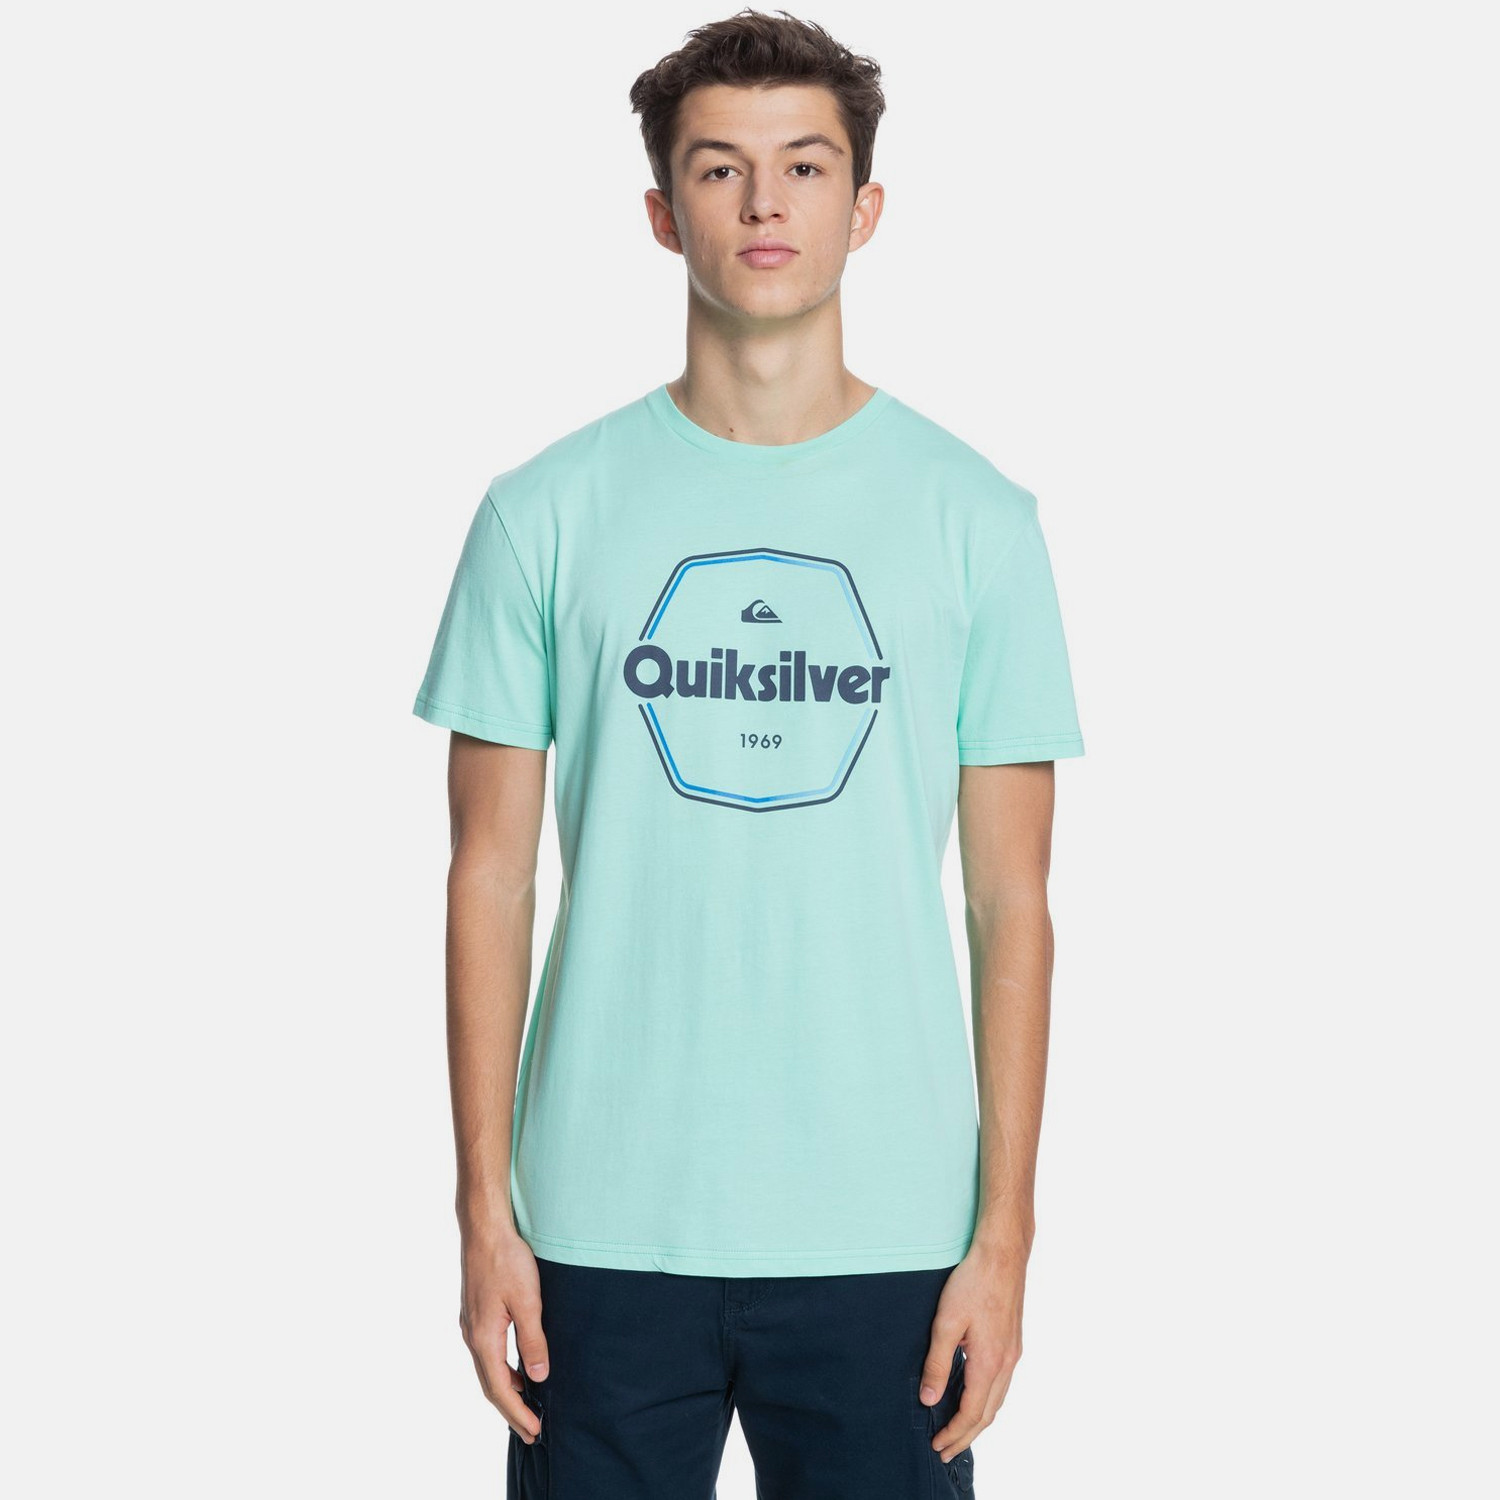 Quiksilver Hard Wired Ανδρικό T-Shirt (9000075649_47966)